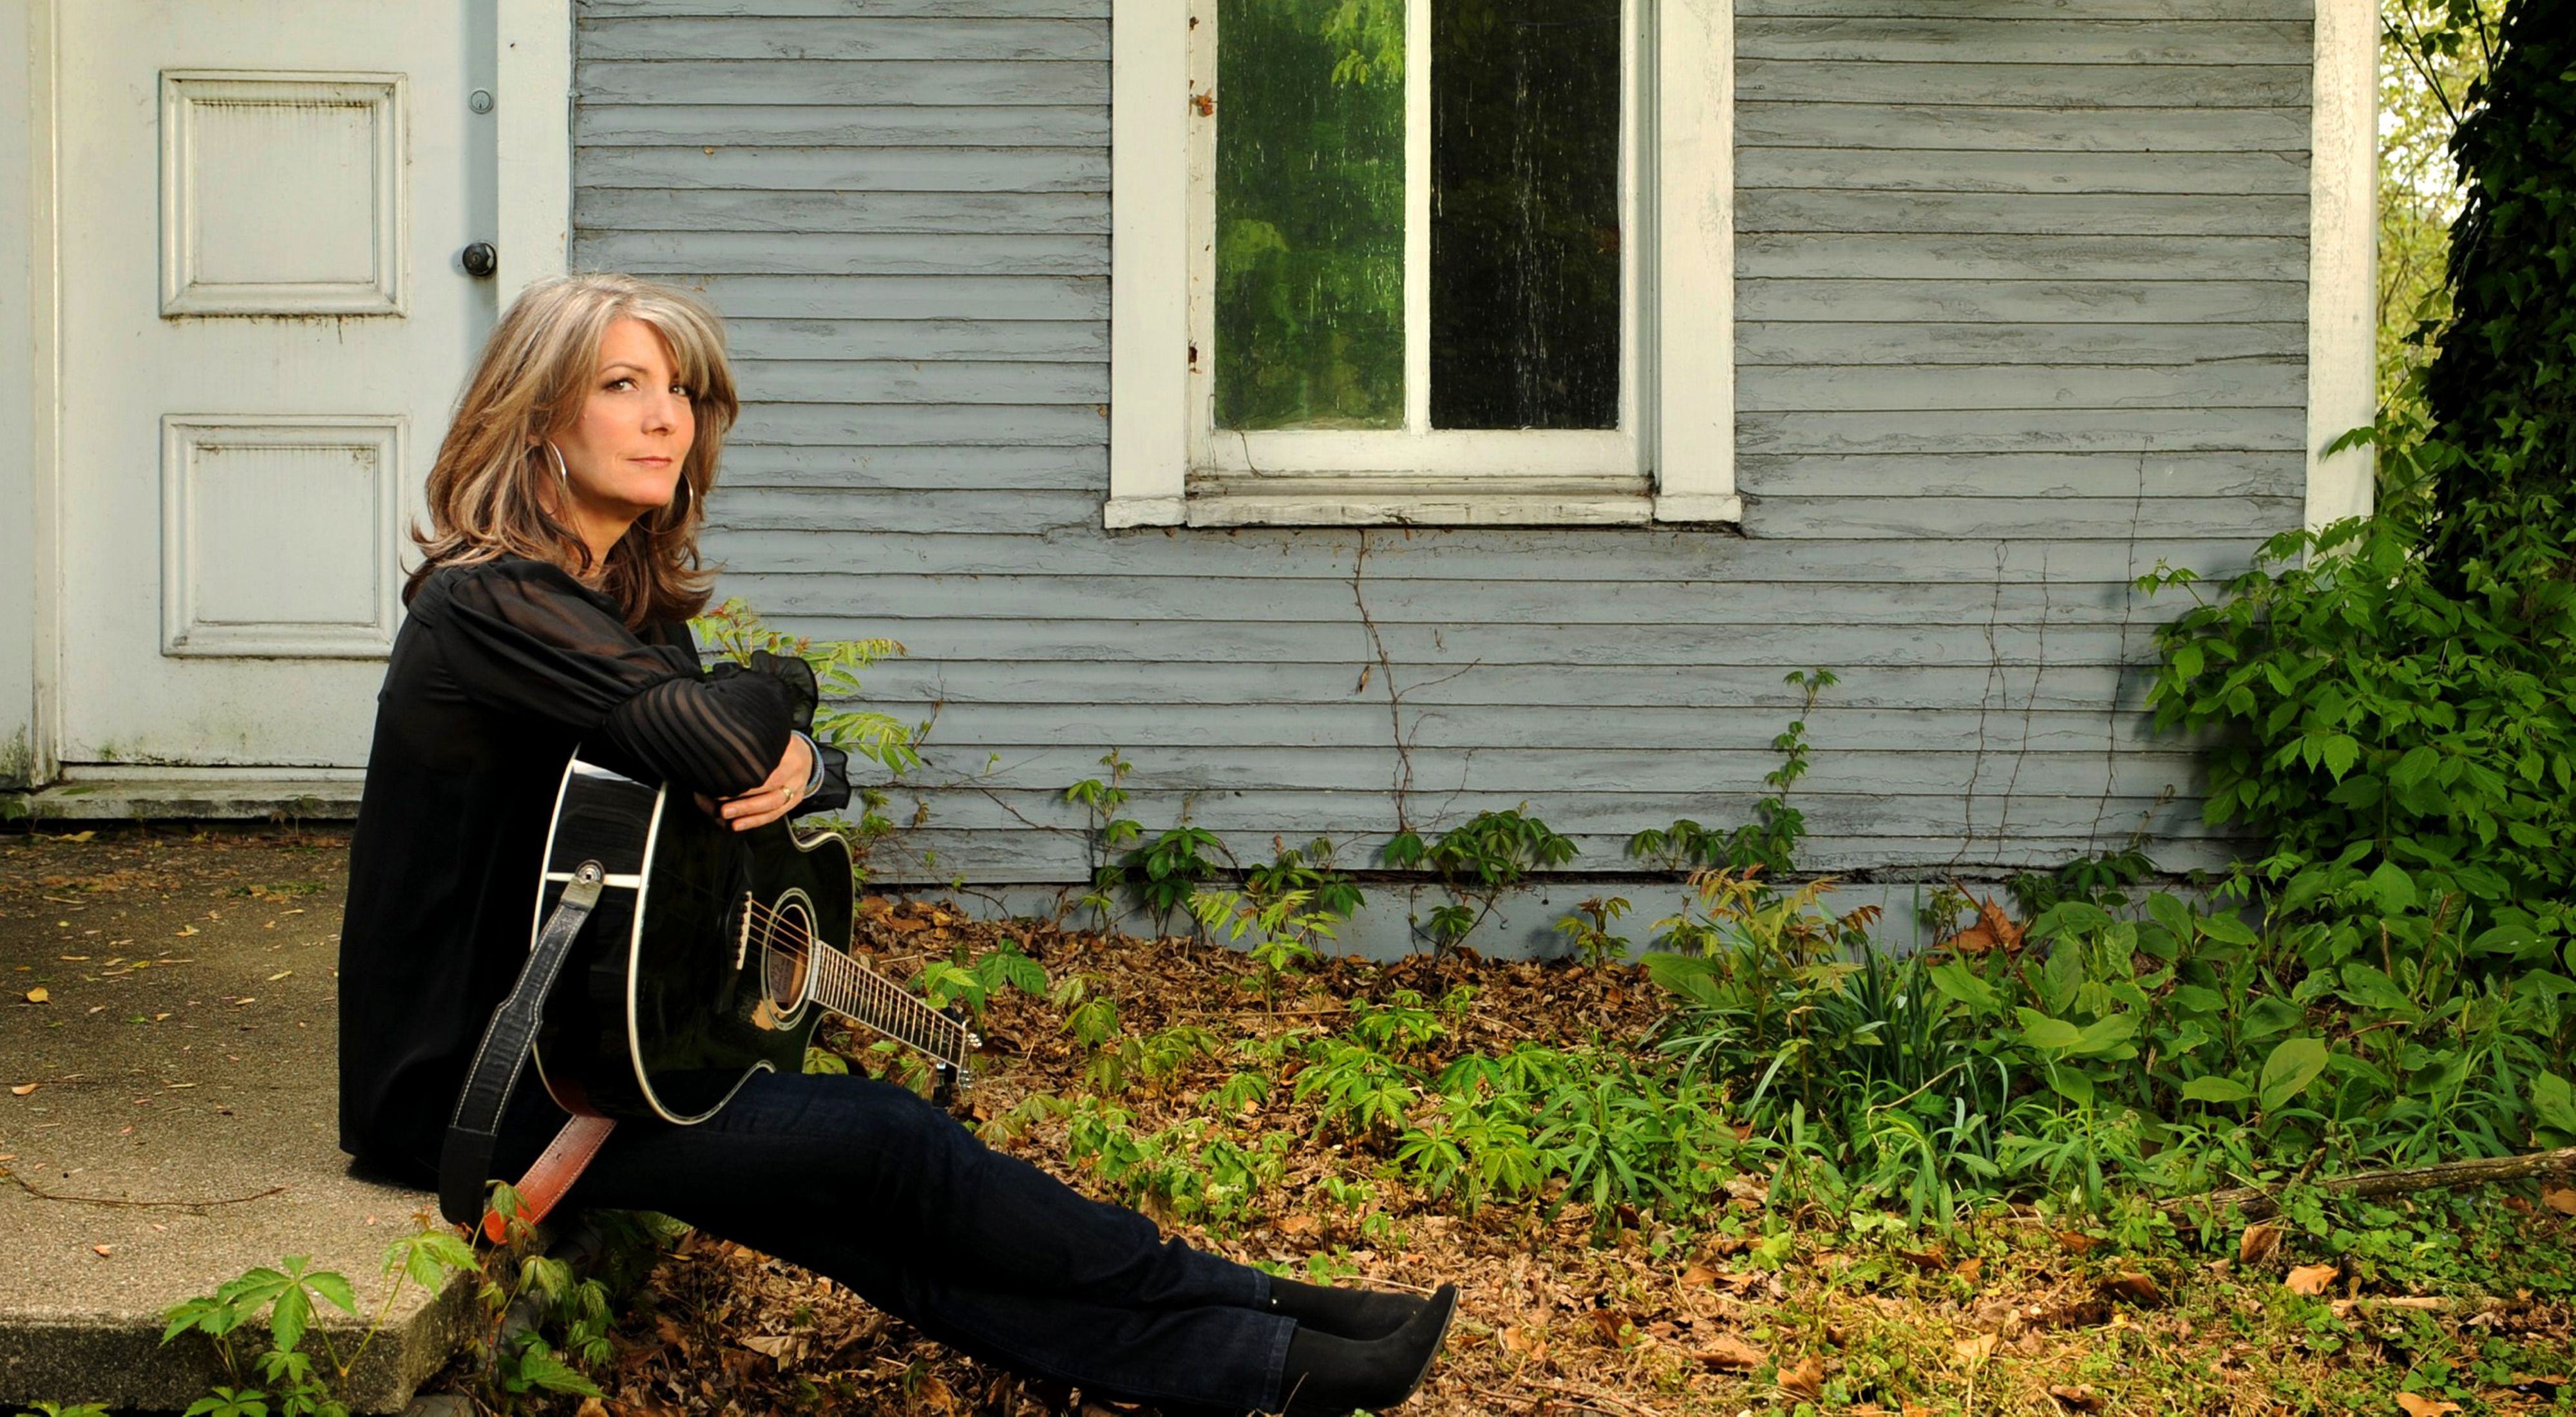 Kathy Mattea holding a guitar in her lap and sitting on a concrete walkway in front of an old house.